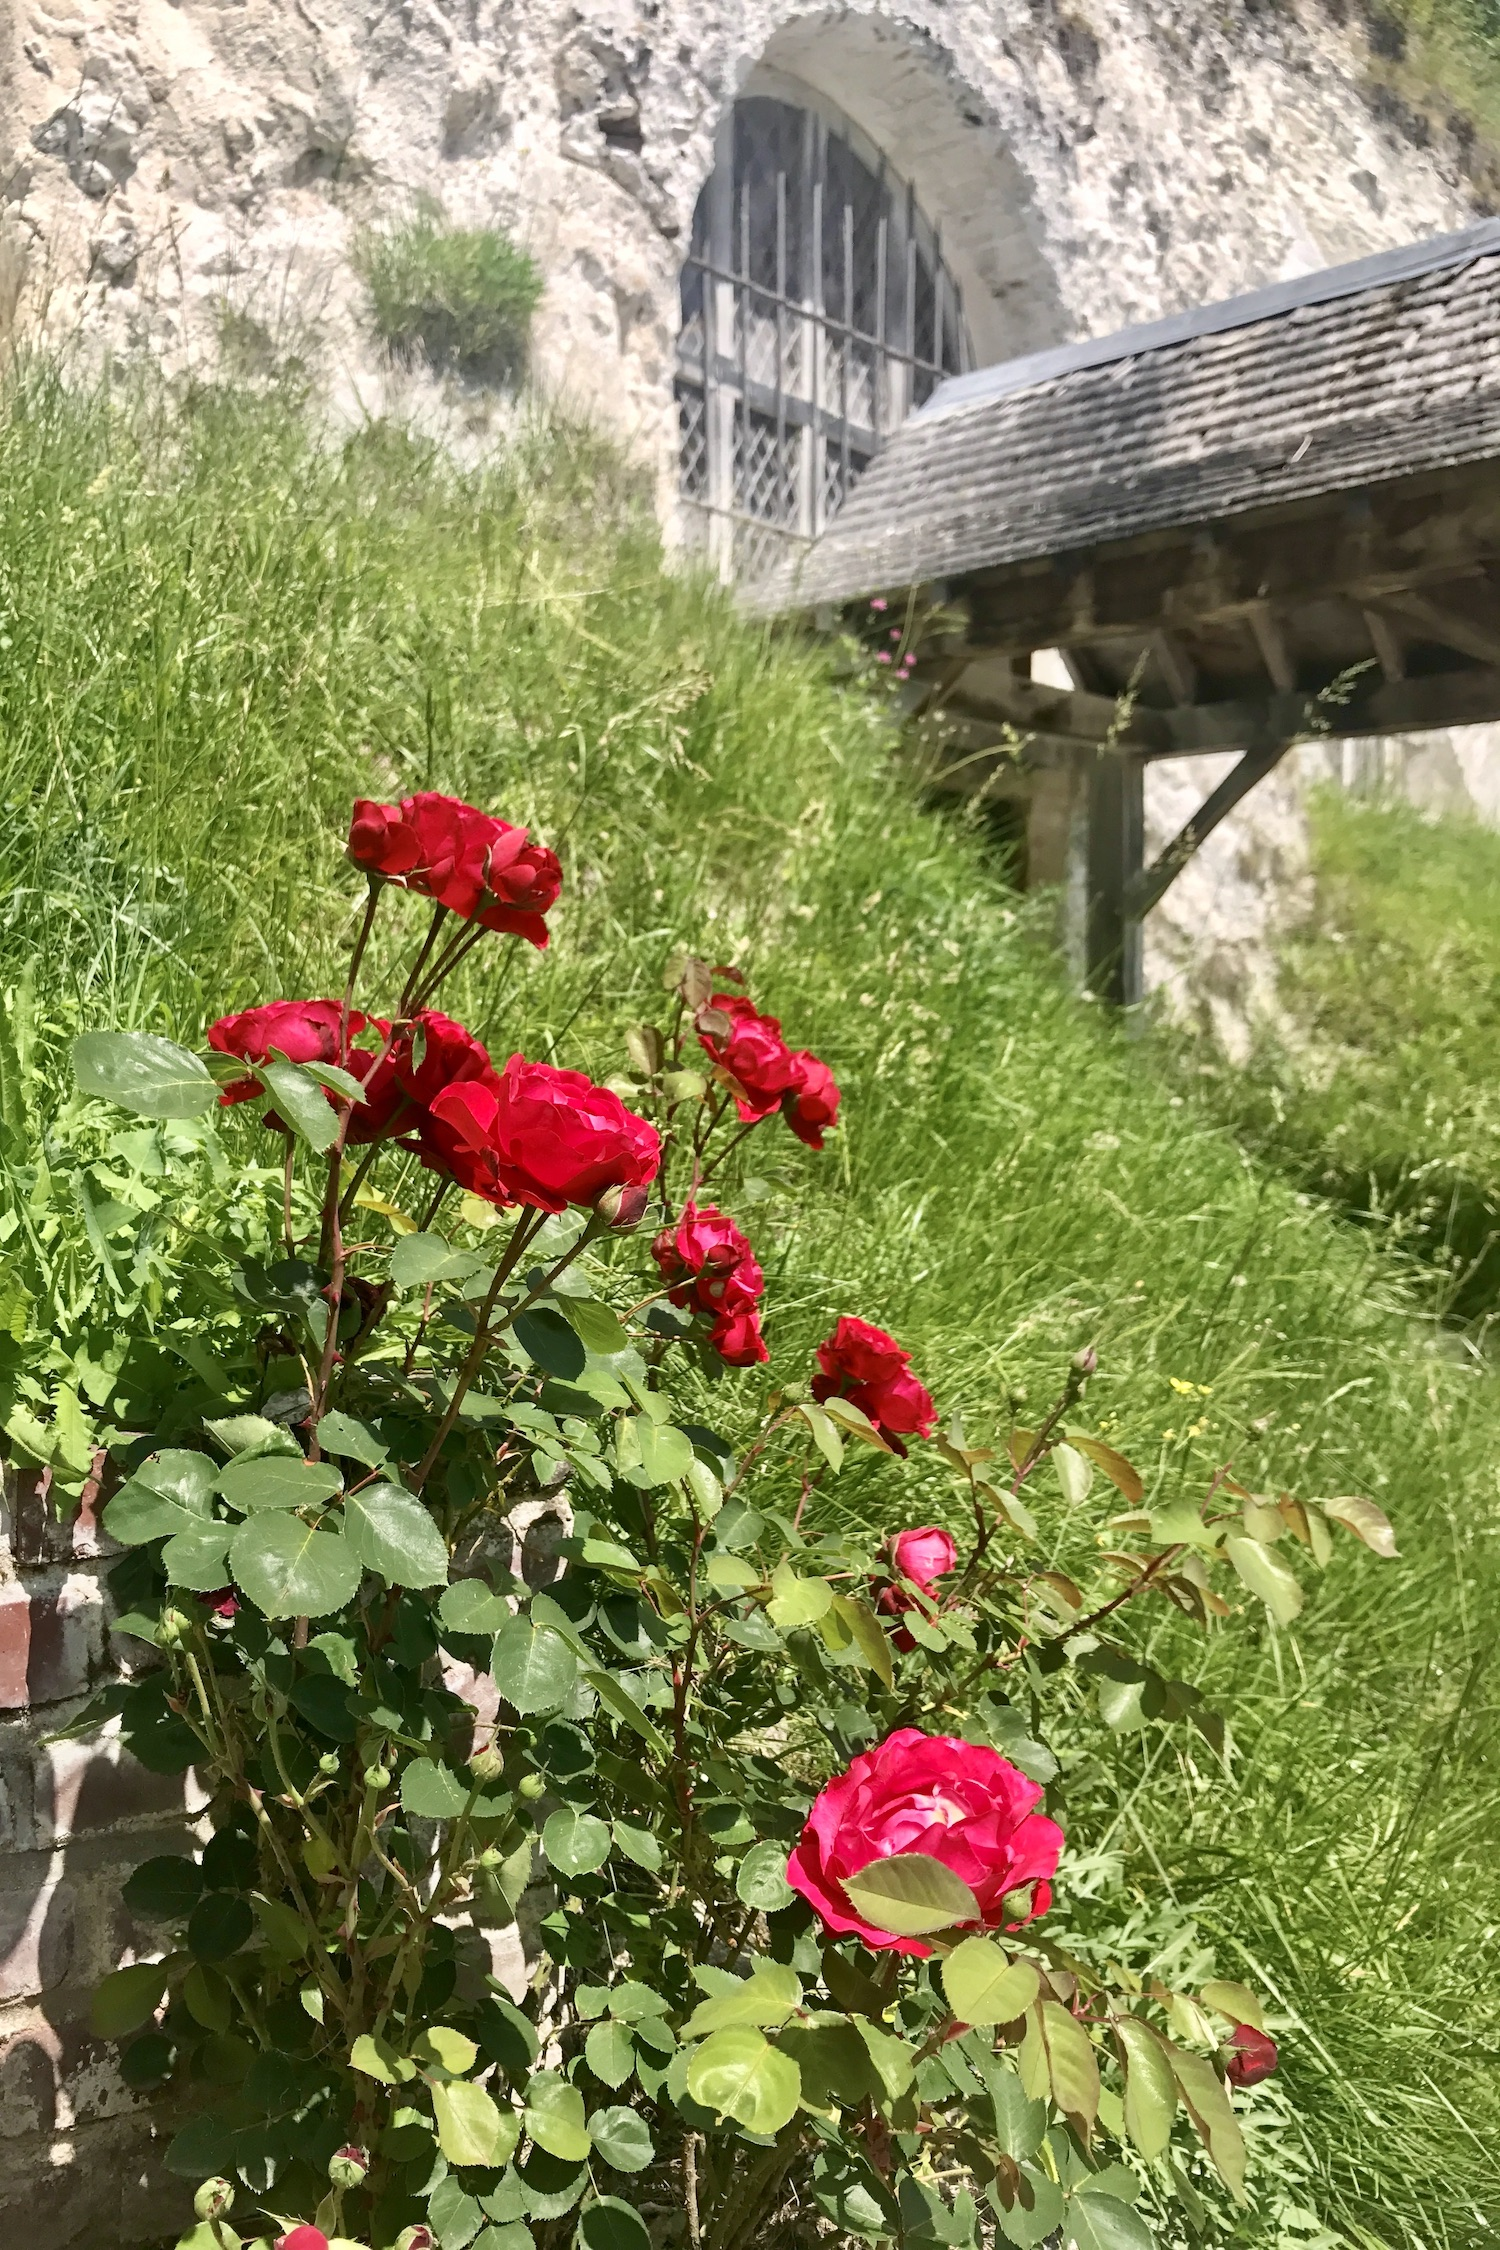 Church in a cliff with red roses